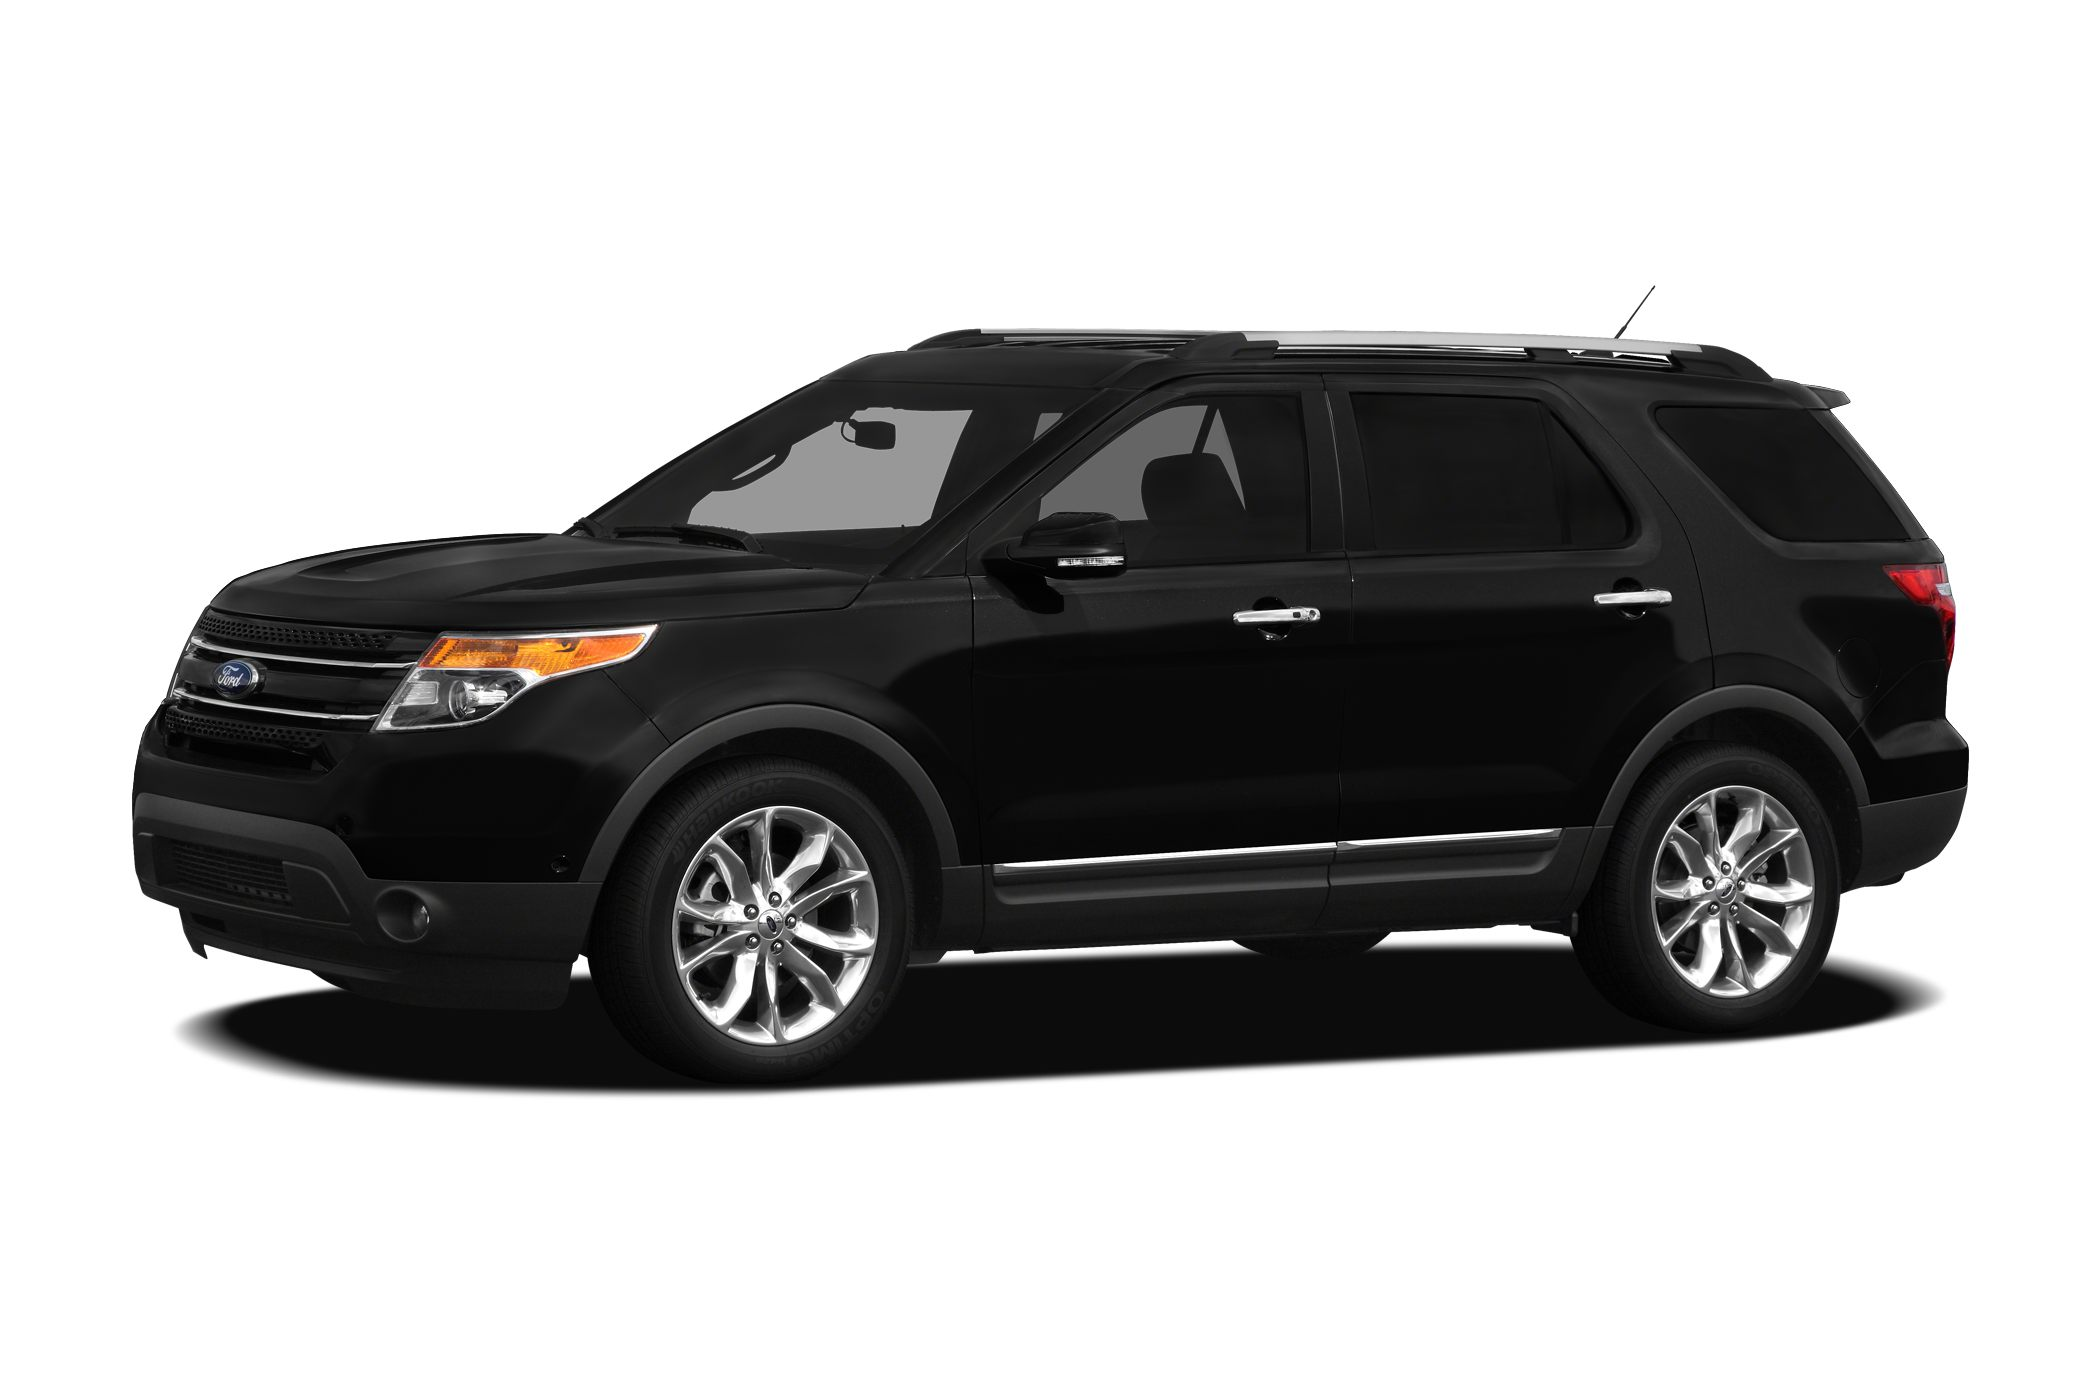 2011 Ford Explorer Limited SUV for sale in Quakertown for $21,995 with 83,832 miles.